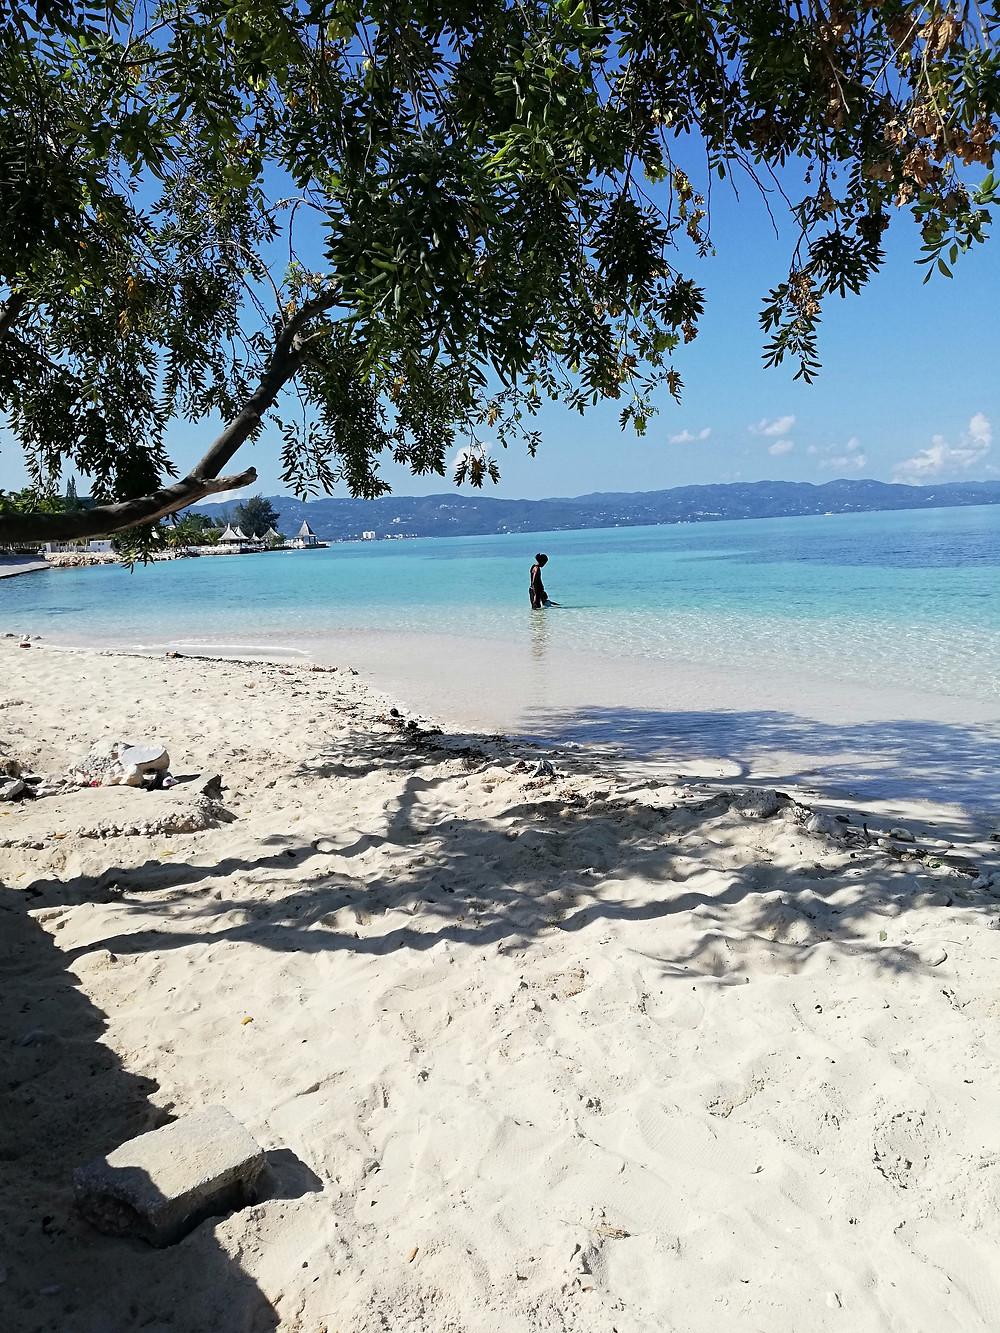 A section of Dead end beach with shade and view towards Montego Bay City center